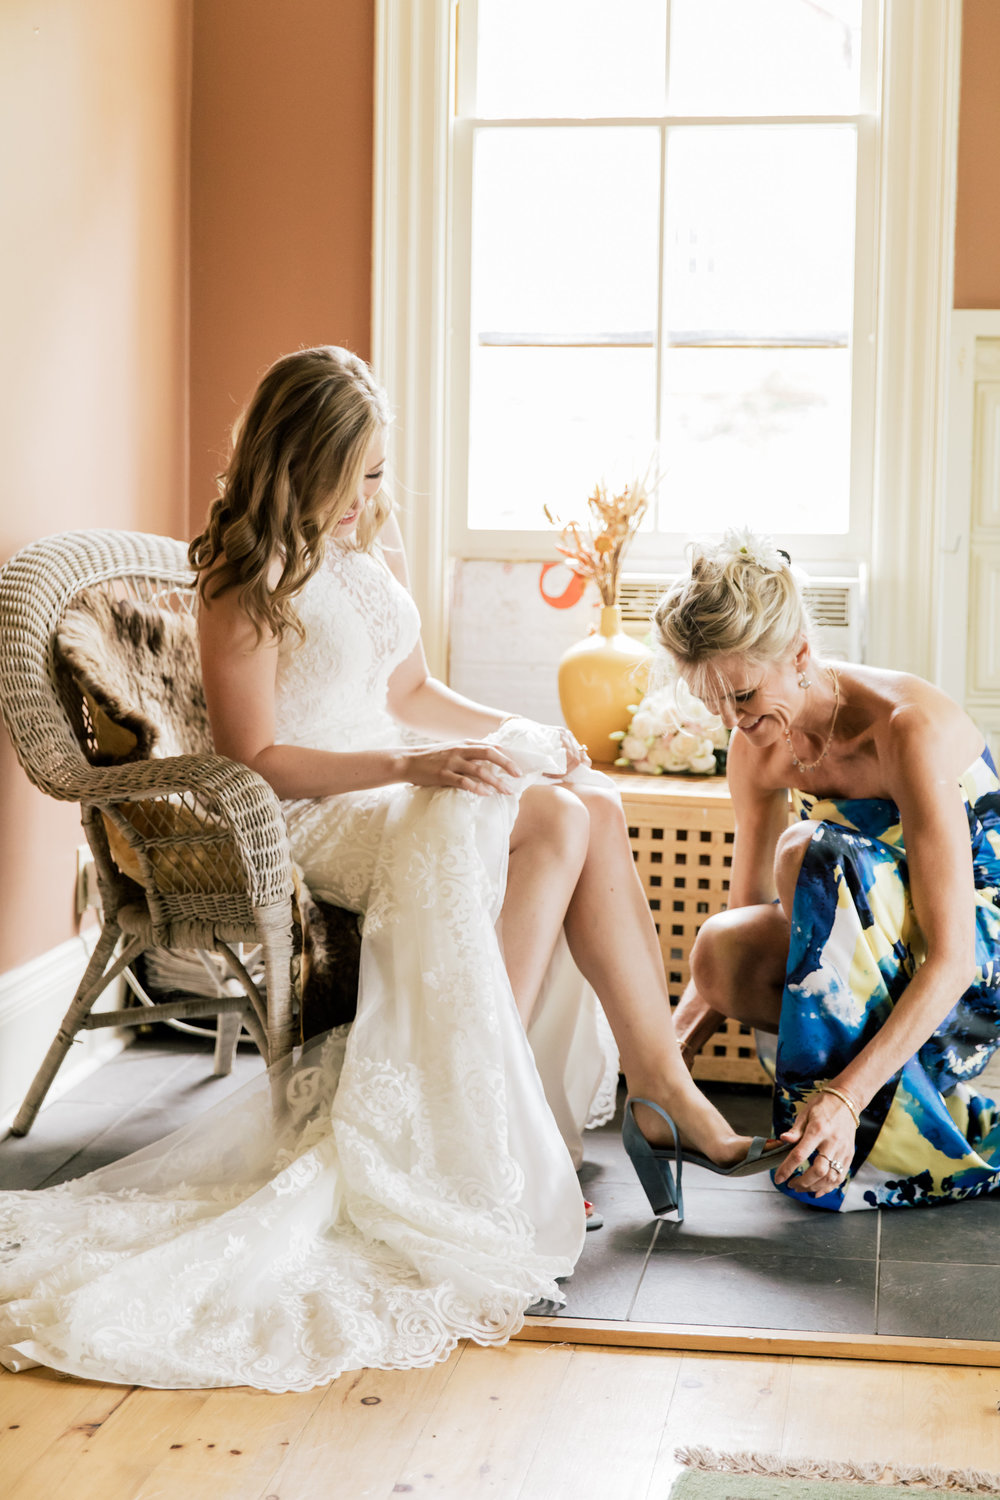 Enjoy your peaceful space with the bridal party